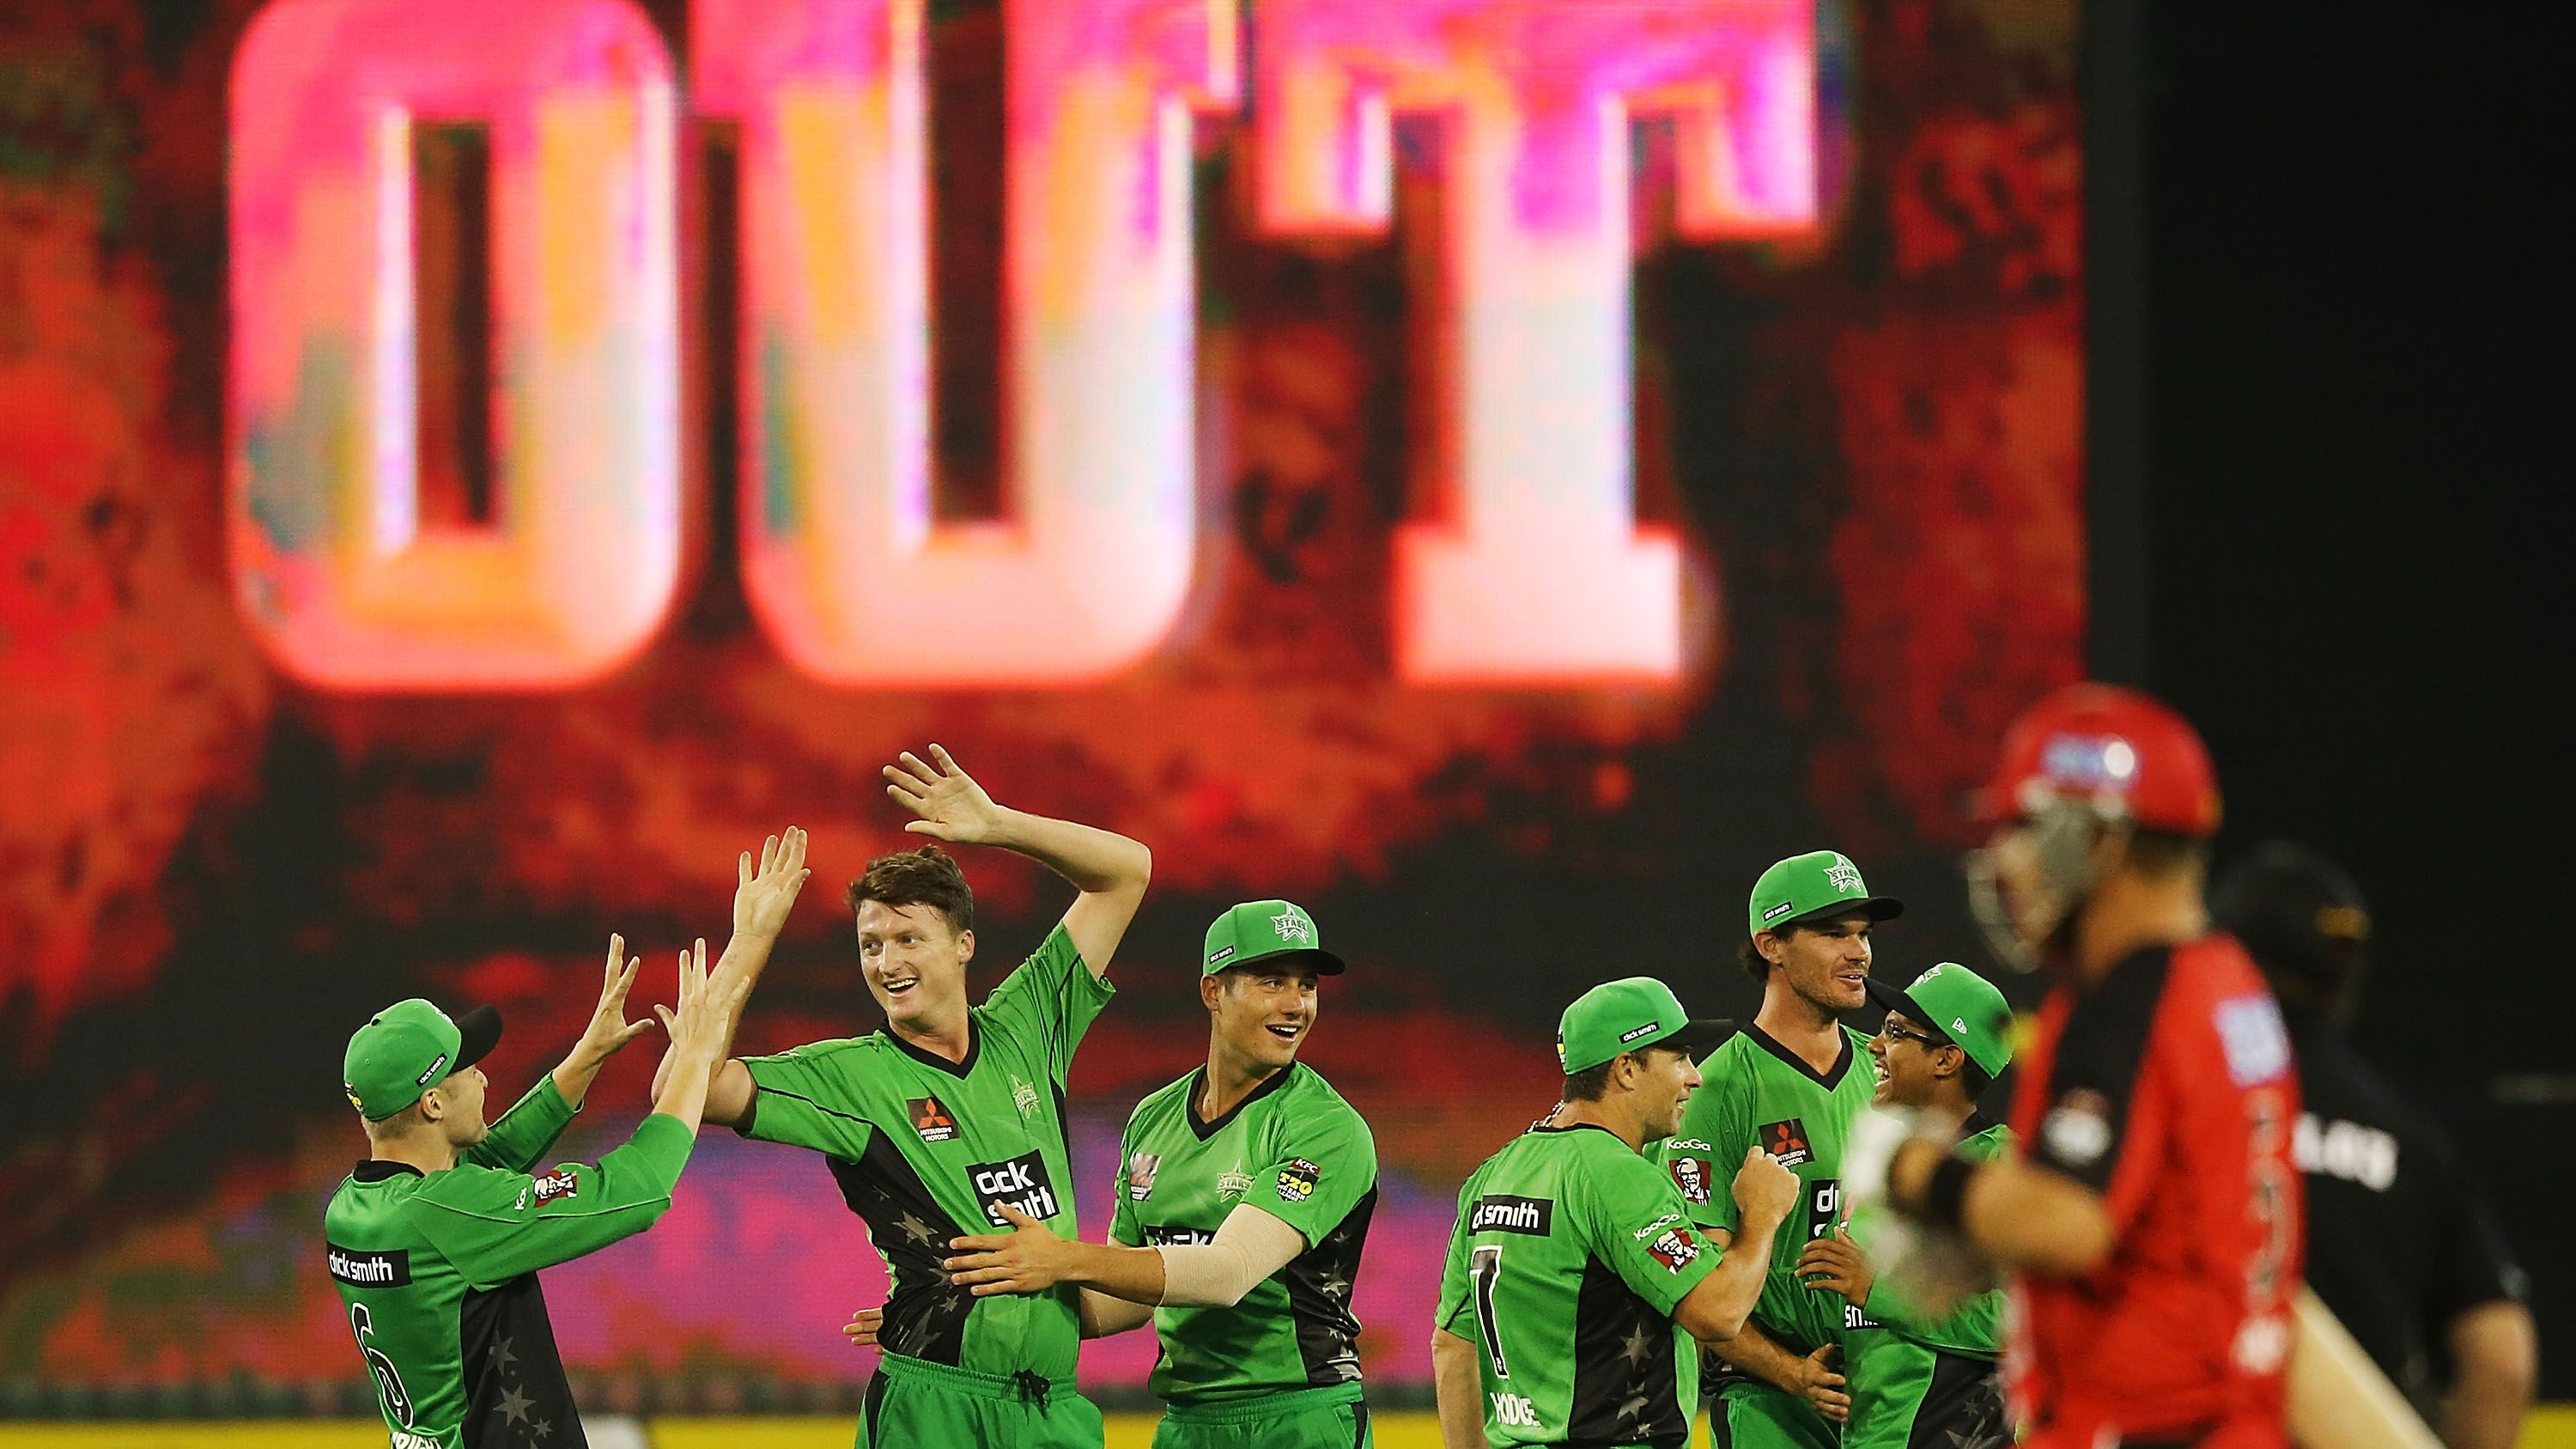 A Big Bash League match between the Melbourne Stars and the Melbourne Renegades.